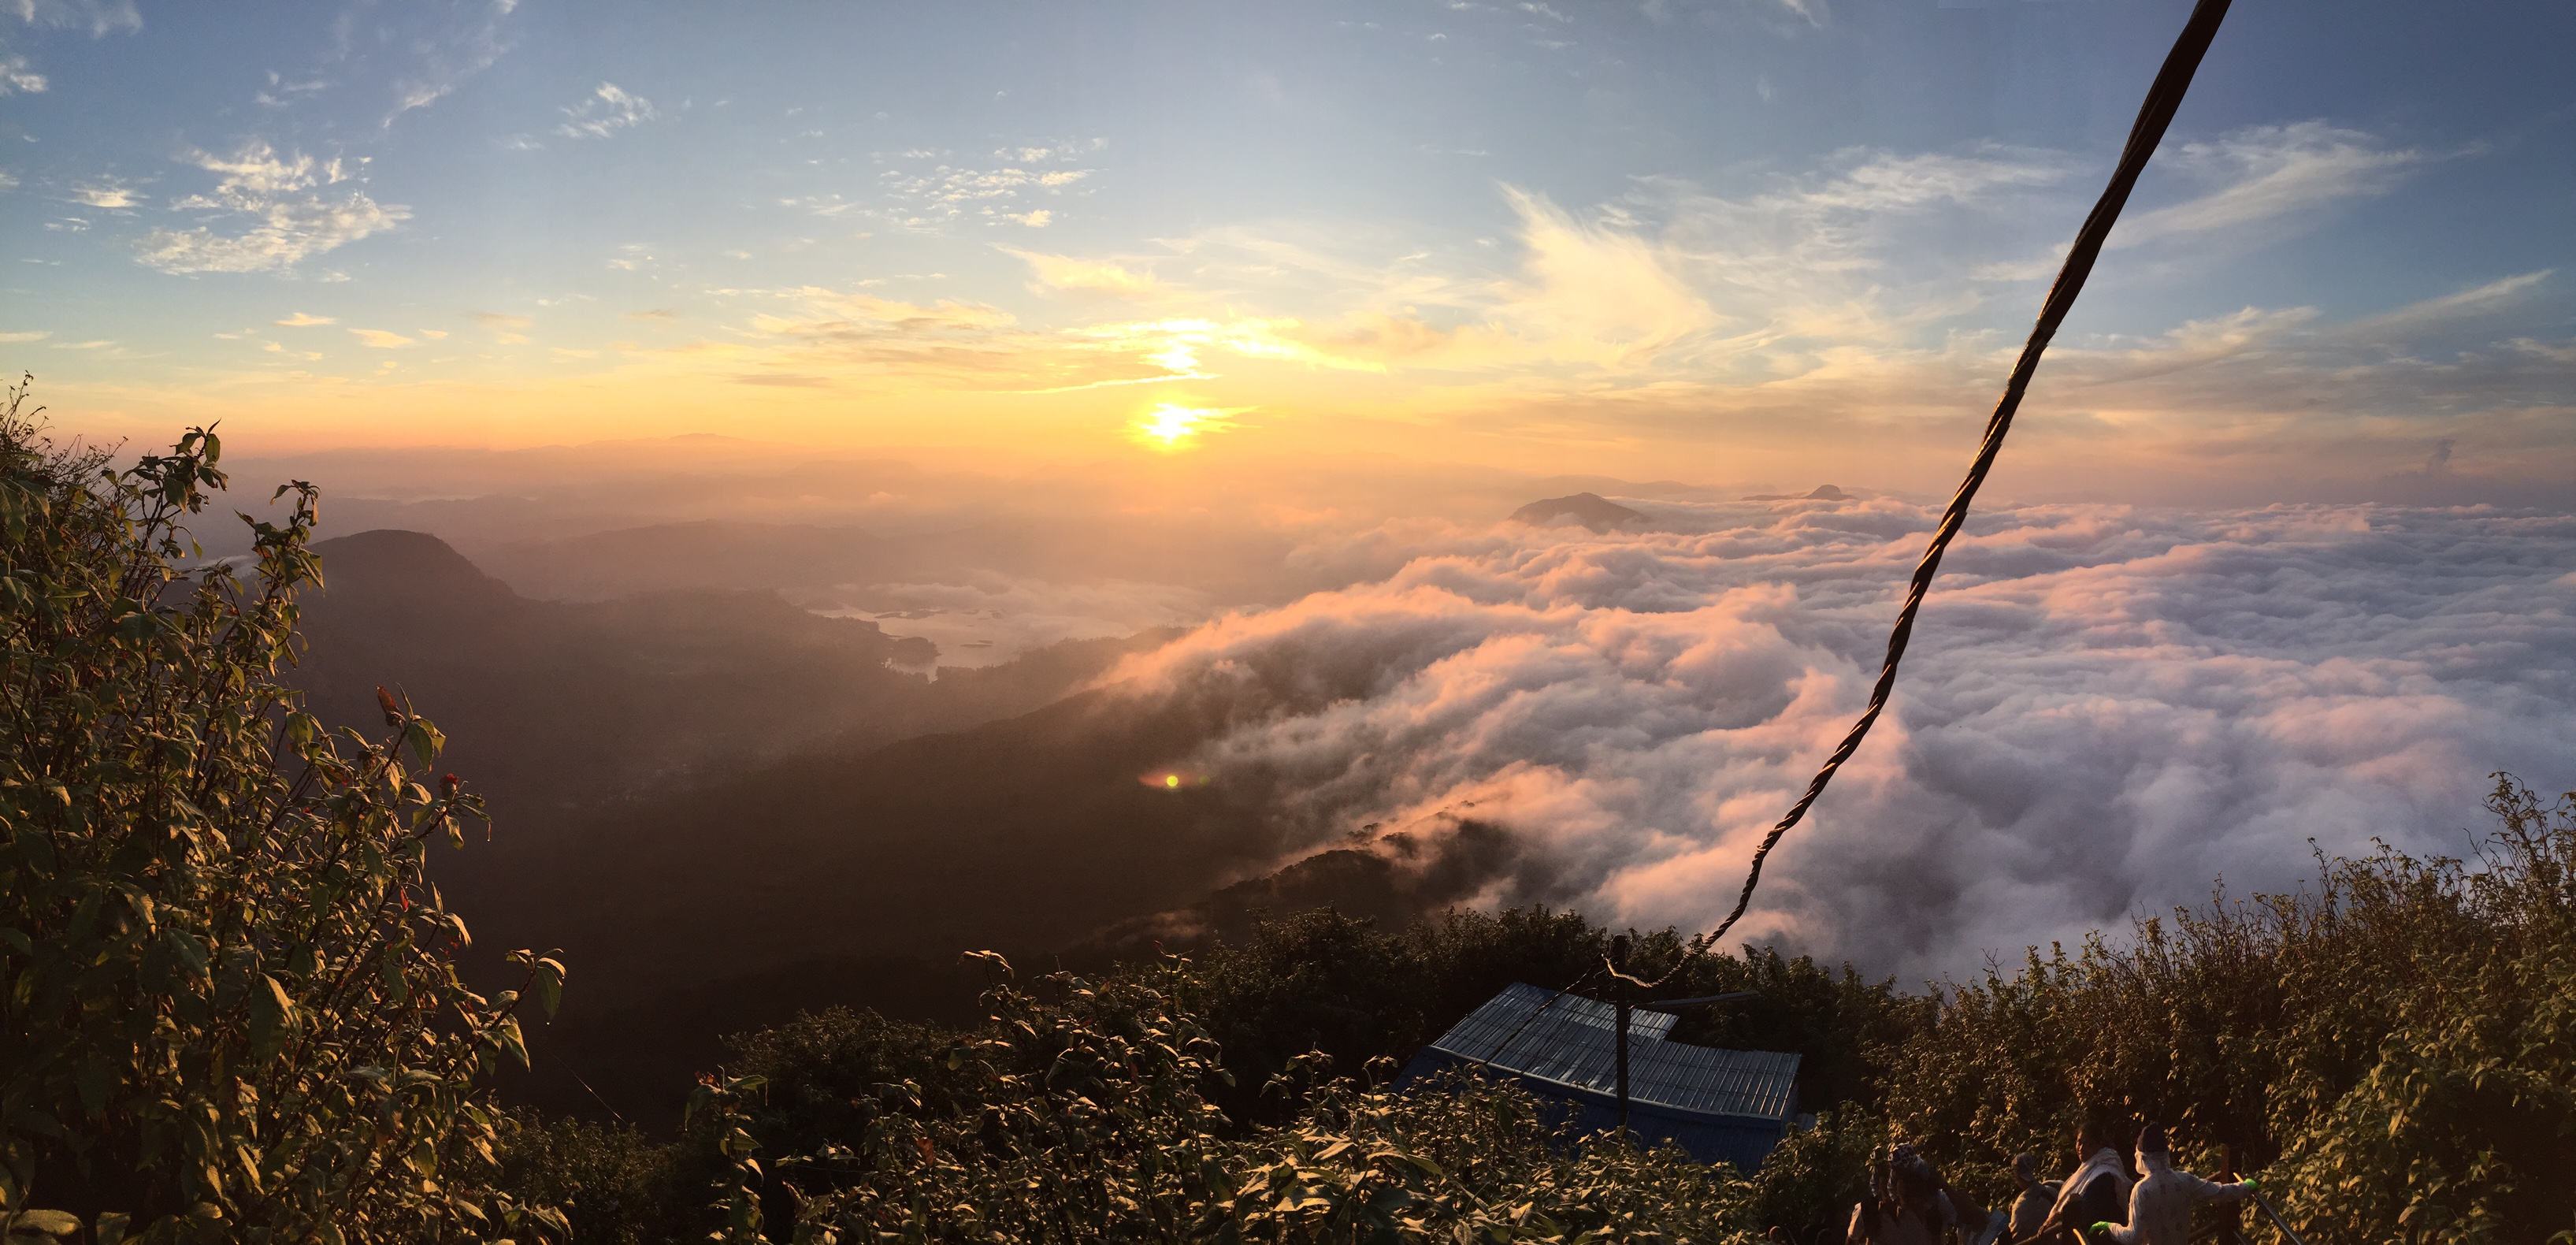 Sunrise Adams Peak Sri Lanka